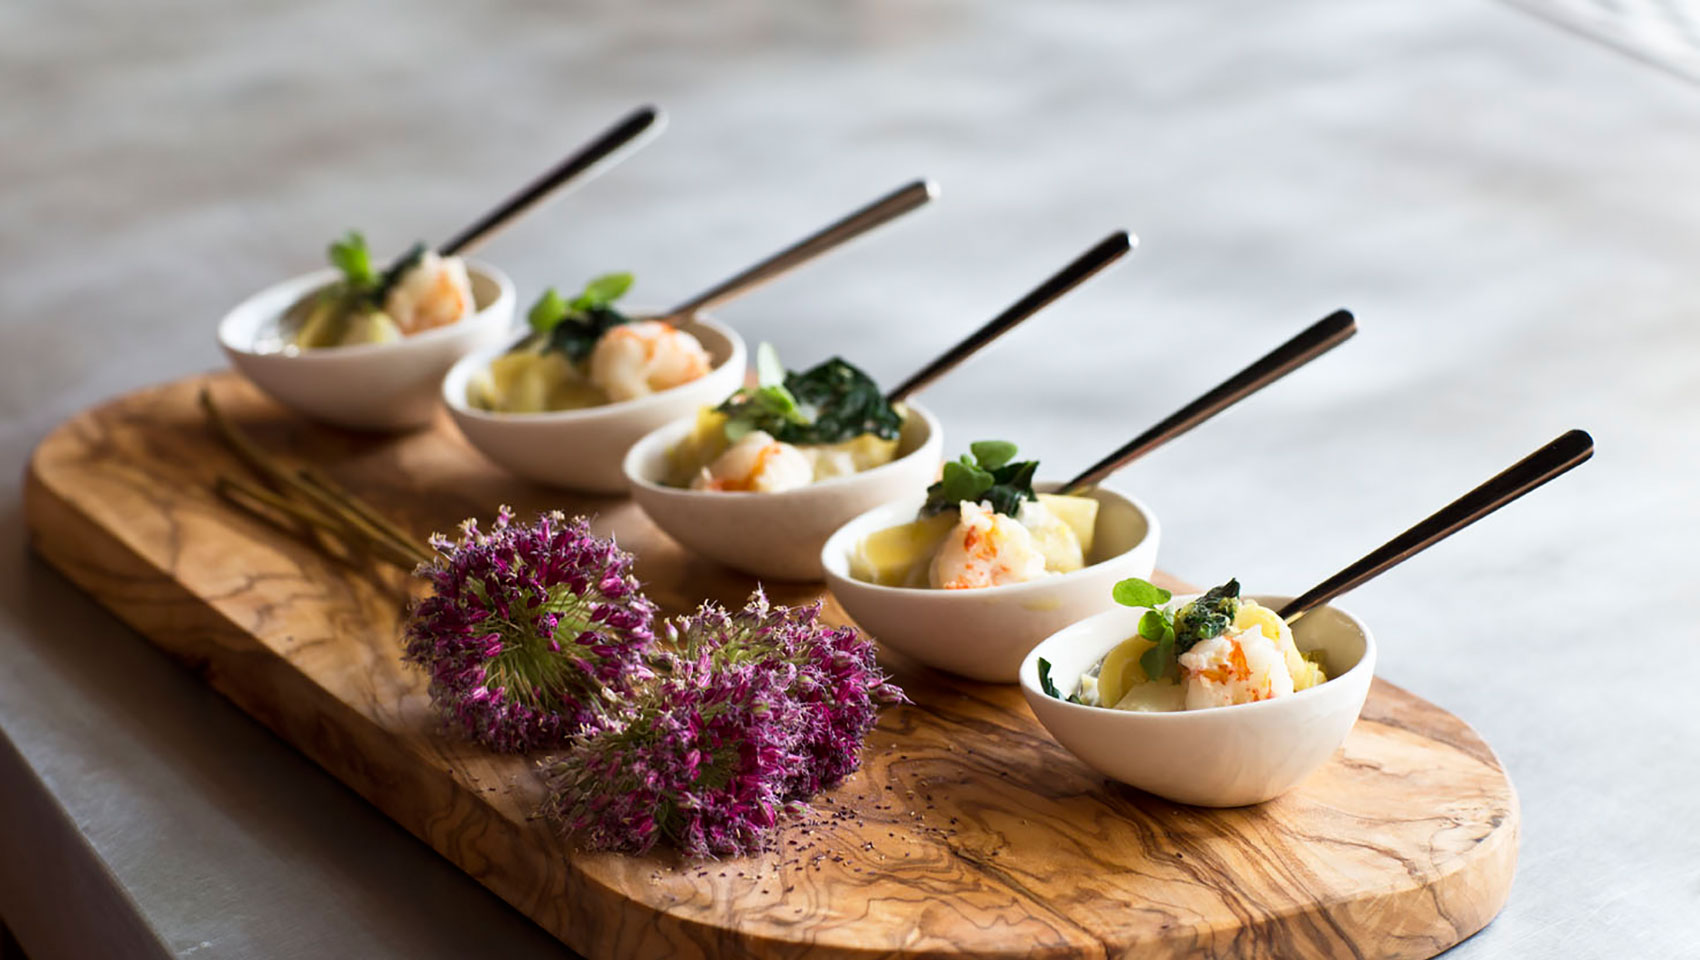 Mini bowls with catering fare placed upon wooden slab